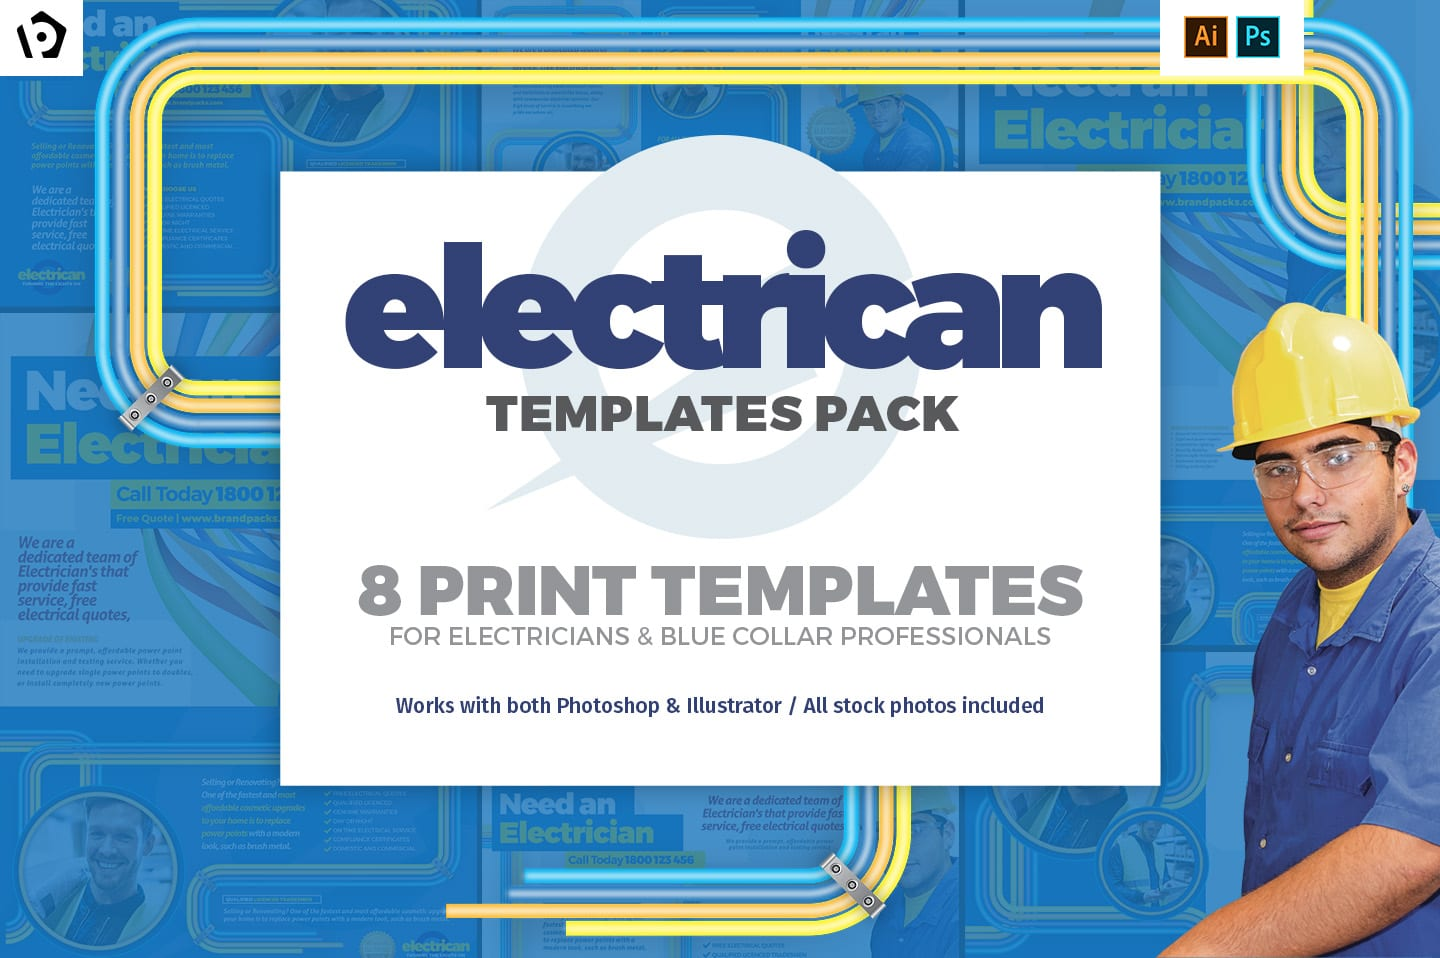 Electrician Templates Pack by BrandPacks